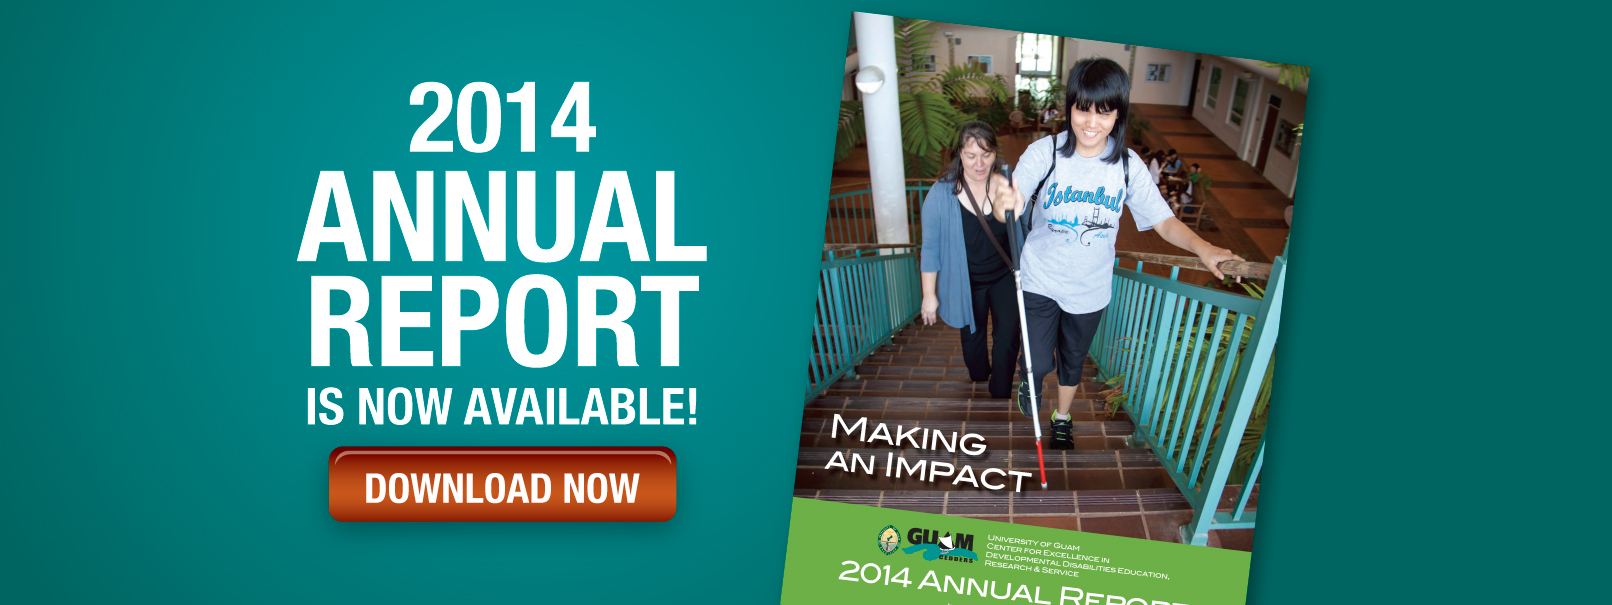 ANNUAL-REPORT-BANNER-2014